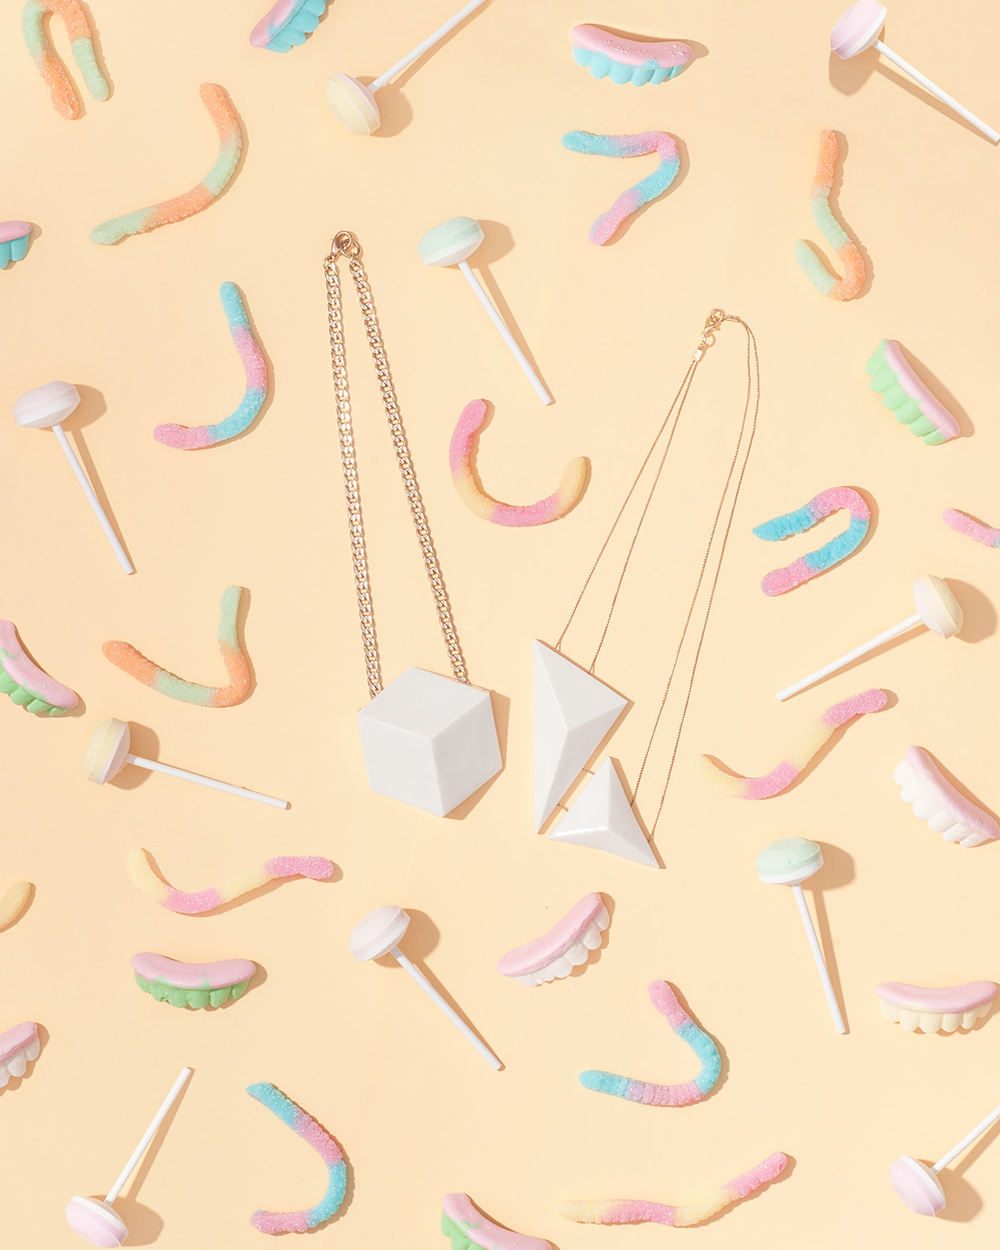 Hello Bone animal and geometric jewelry